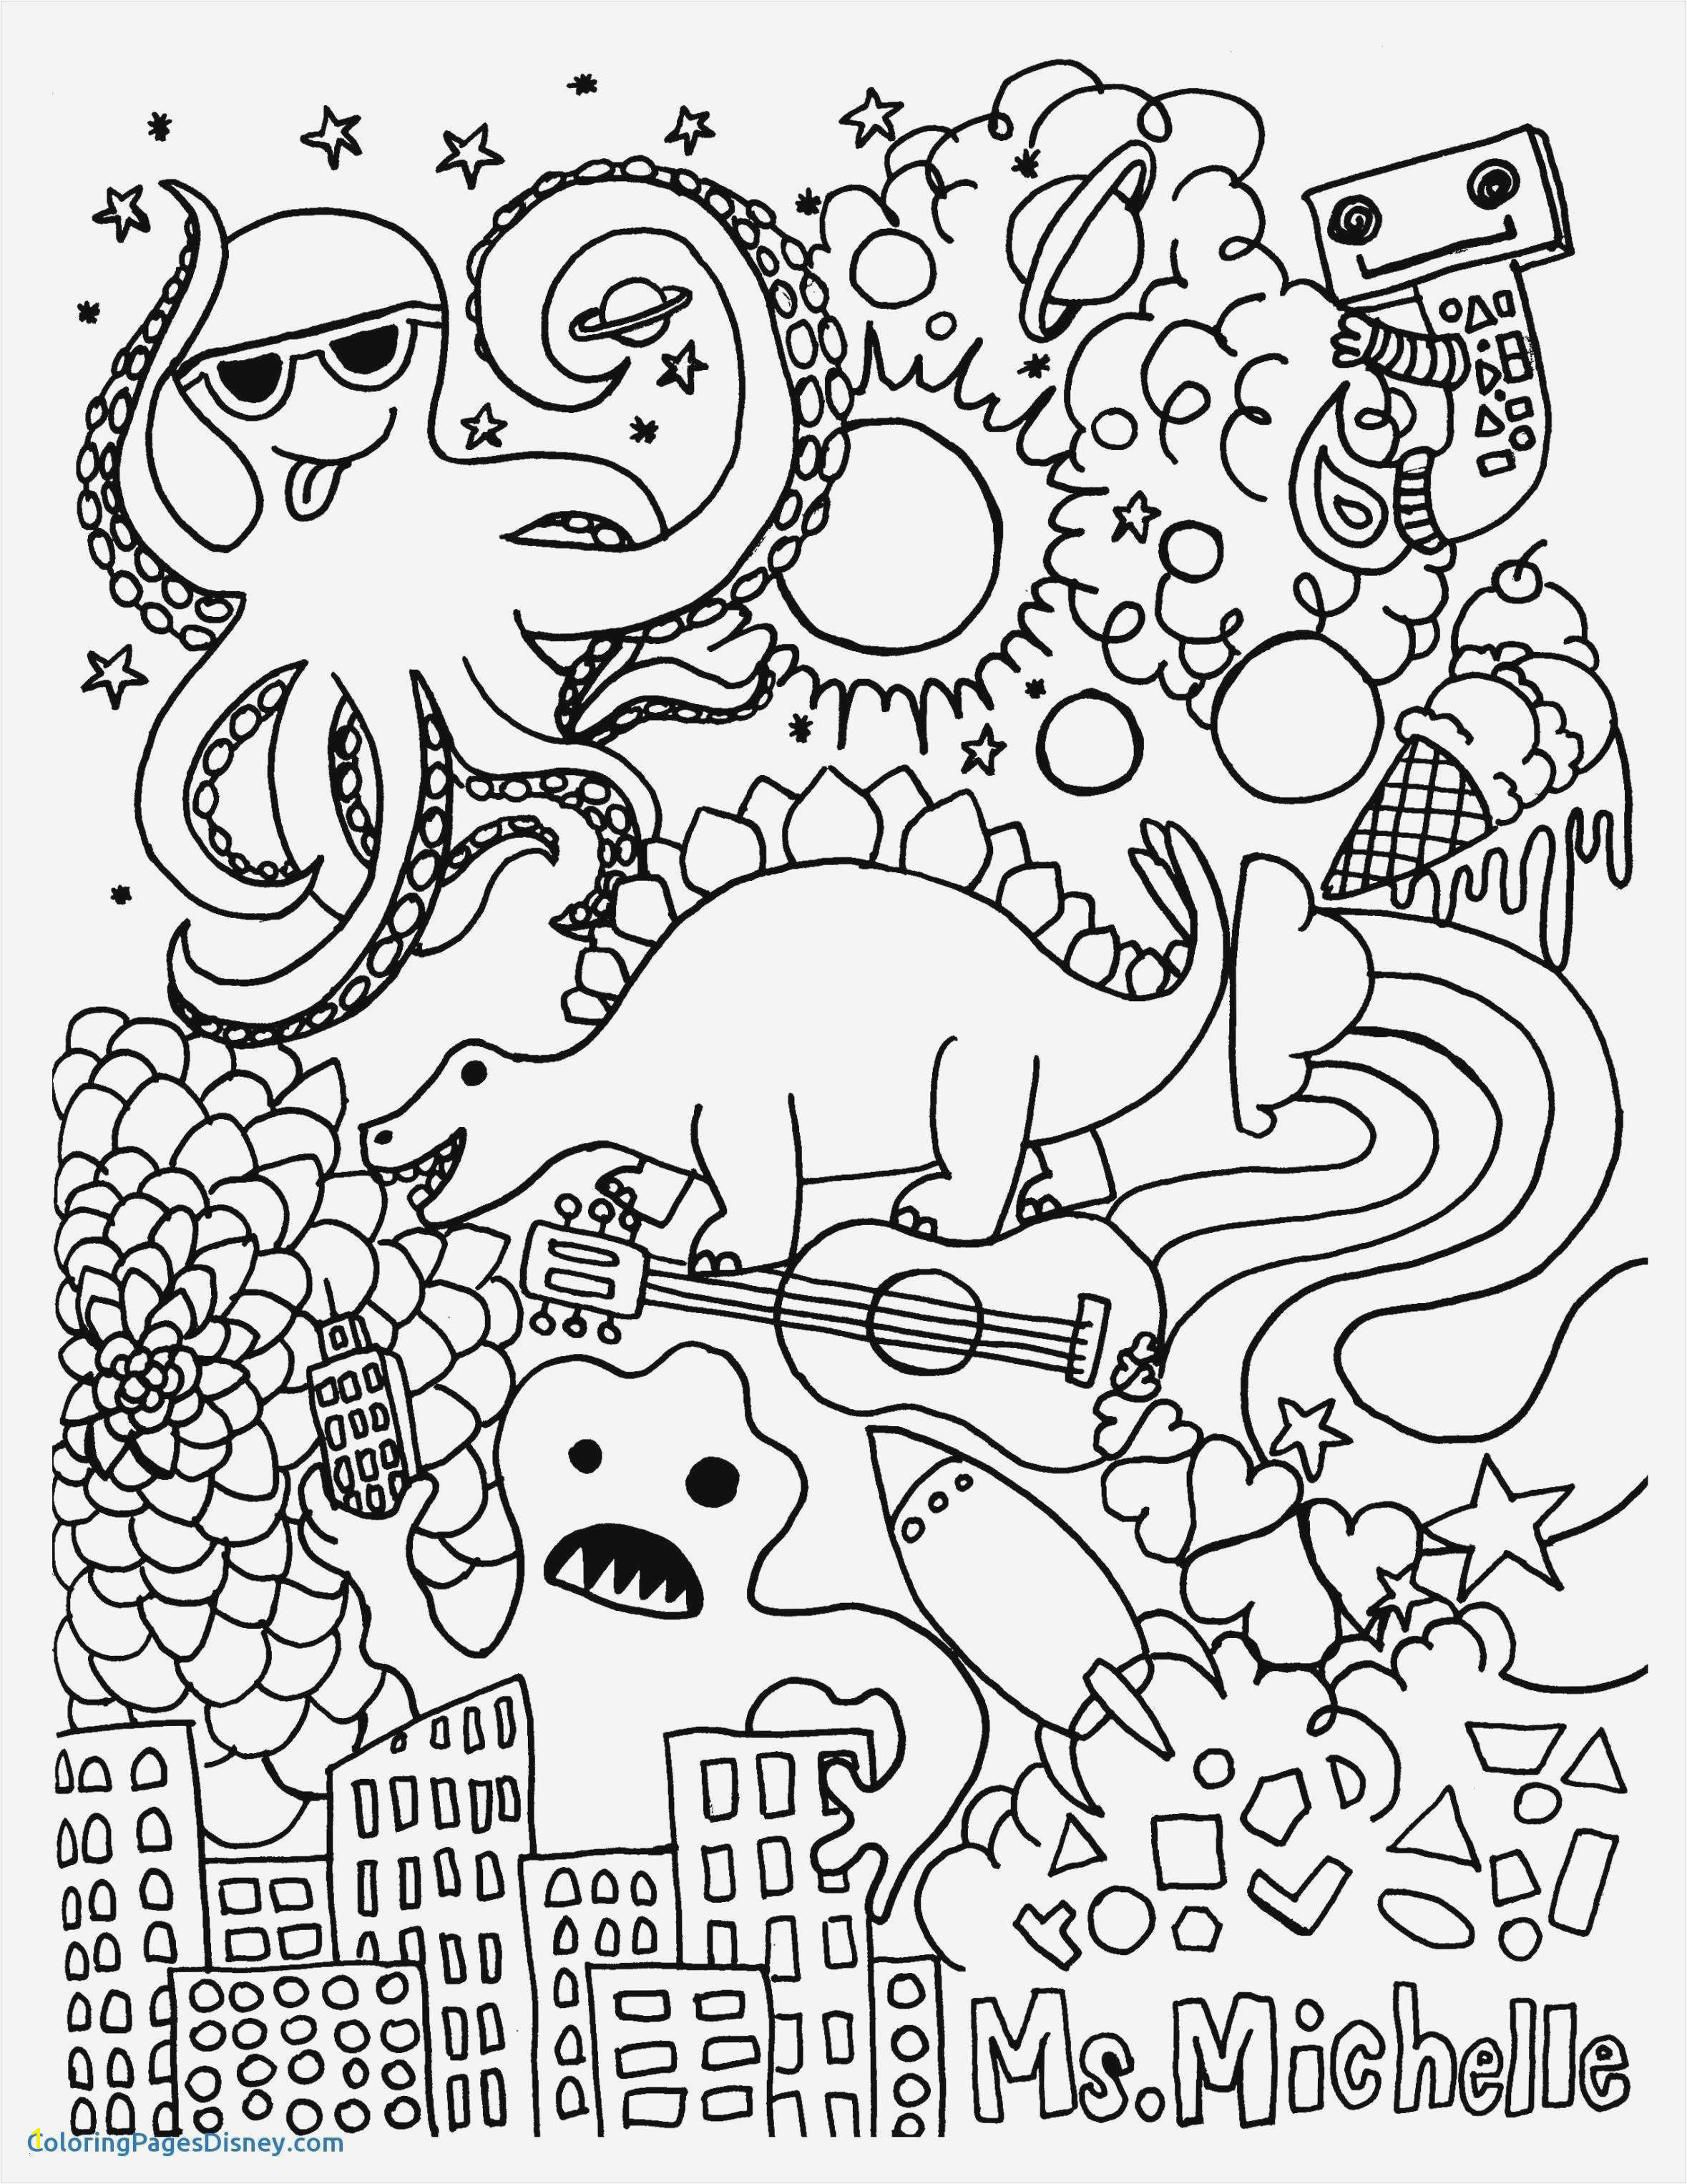 Download Worksheet · Free Coloring Book Pages